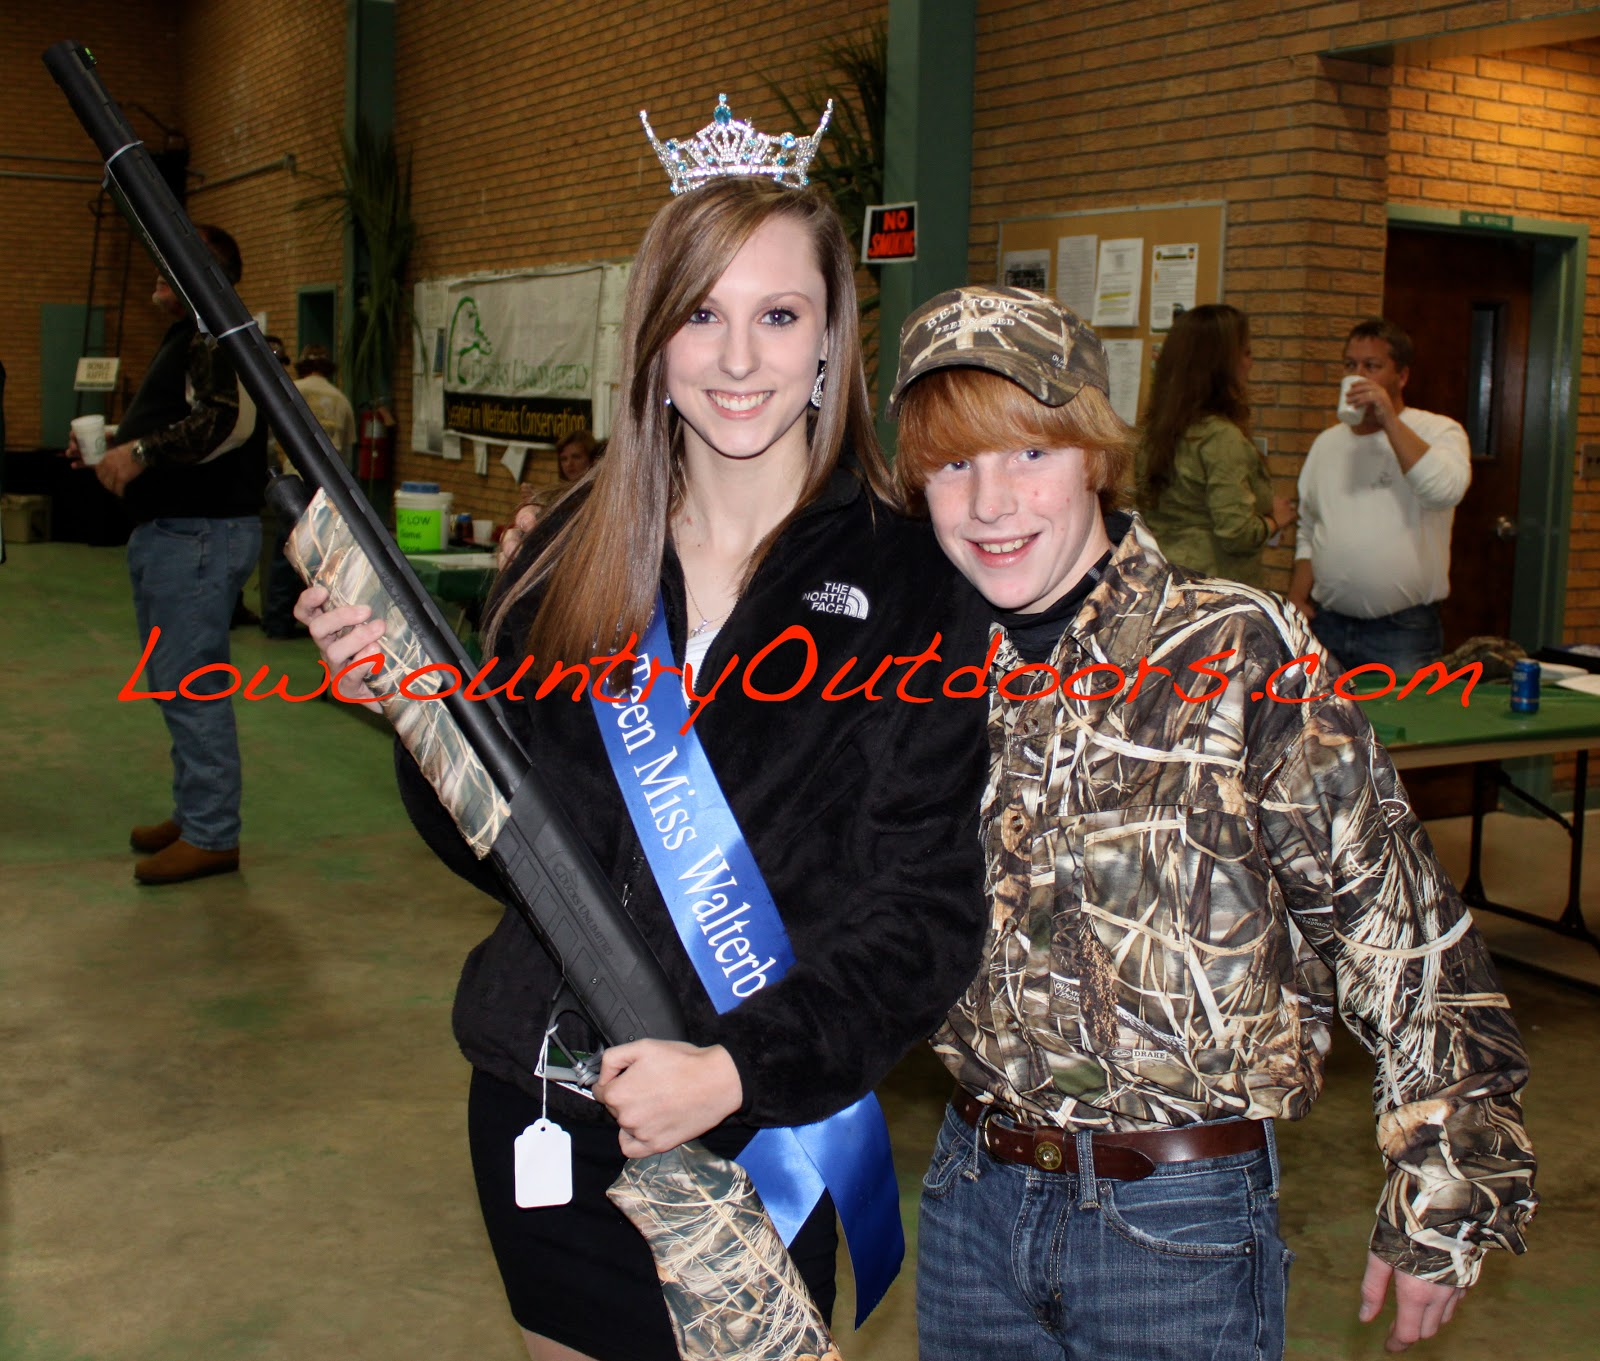 Lowcountry outdoors 2012 Walterboro Ducks Unlimited banquet